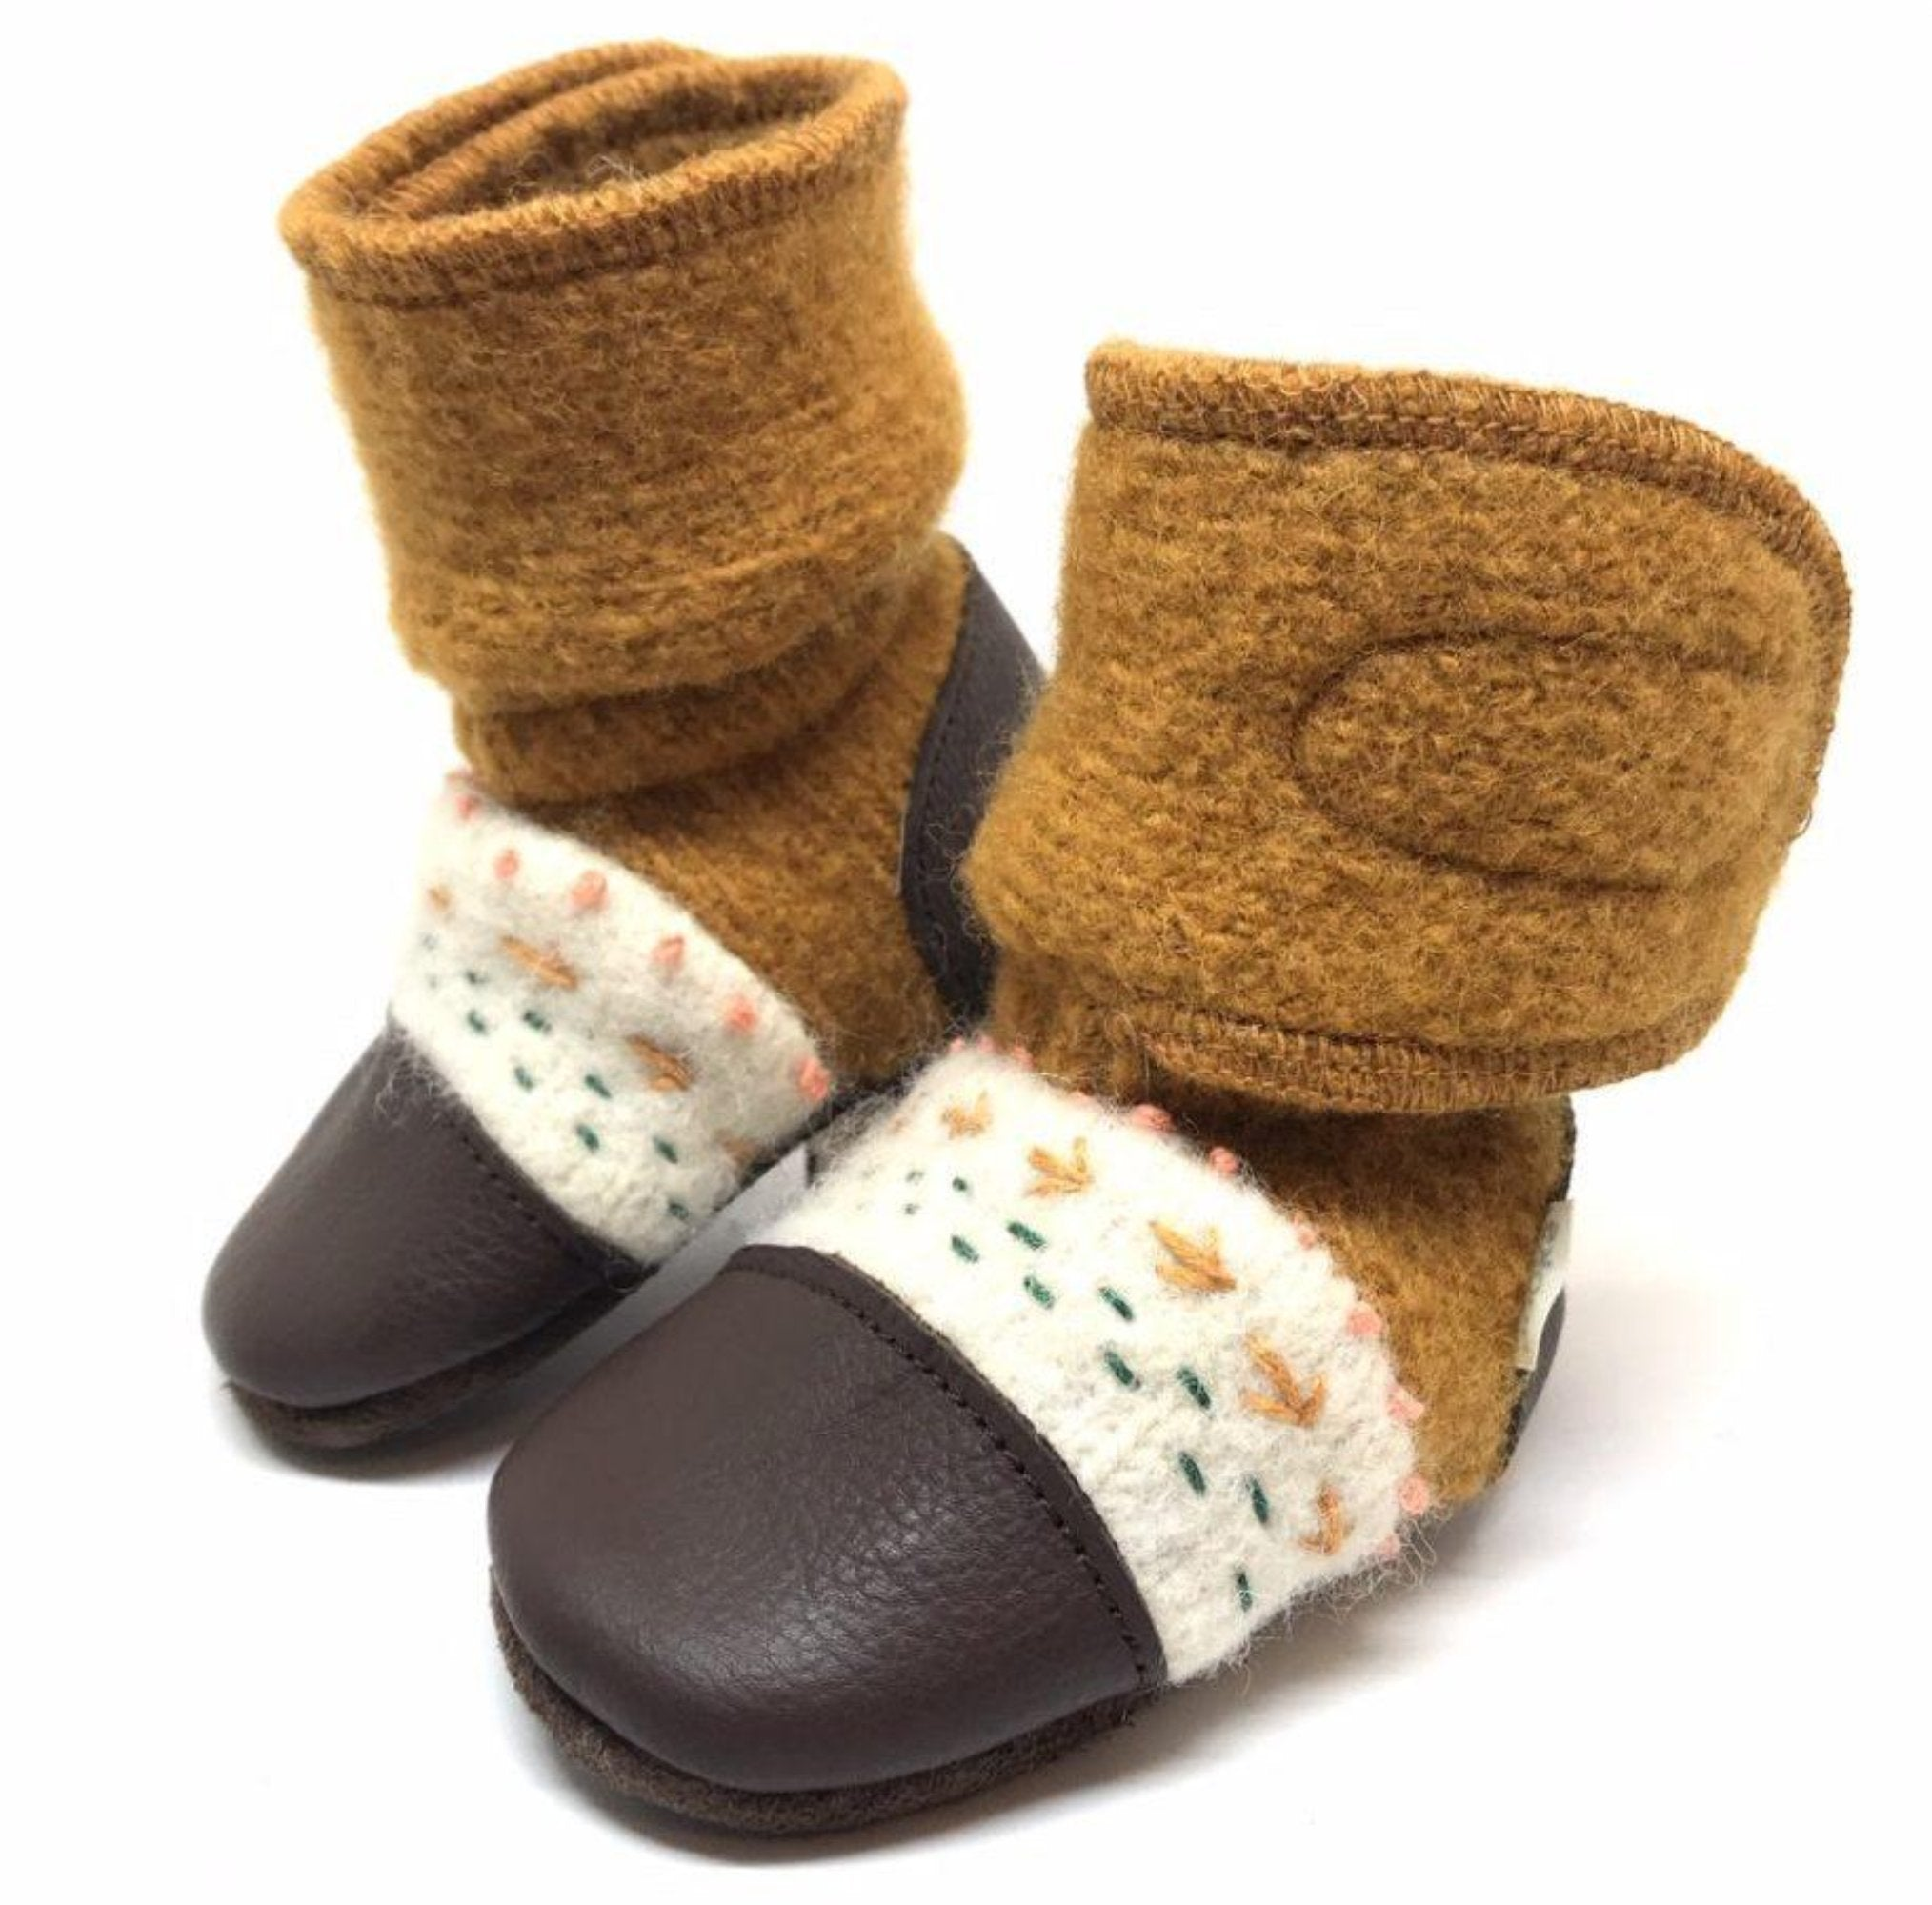 137279c6e9168 Nooks Embroidered Booties for Baby & Toddler - Golden Spruce